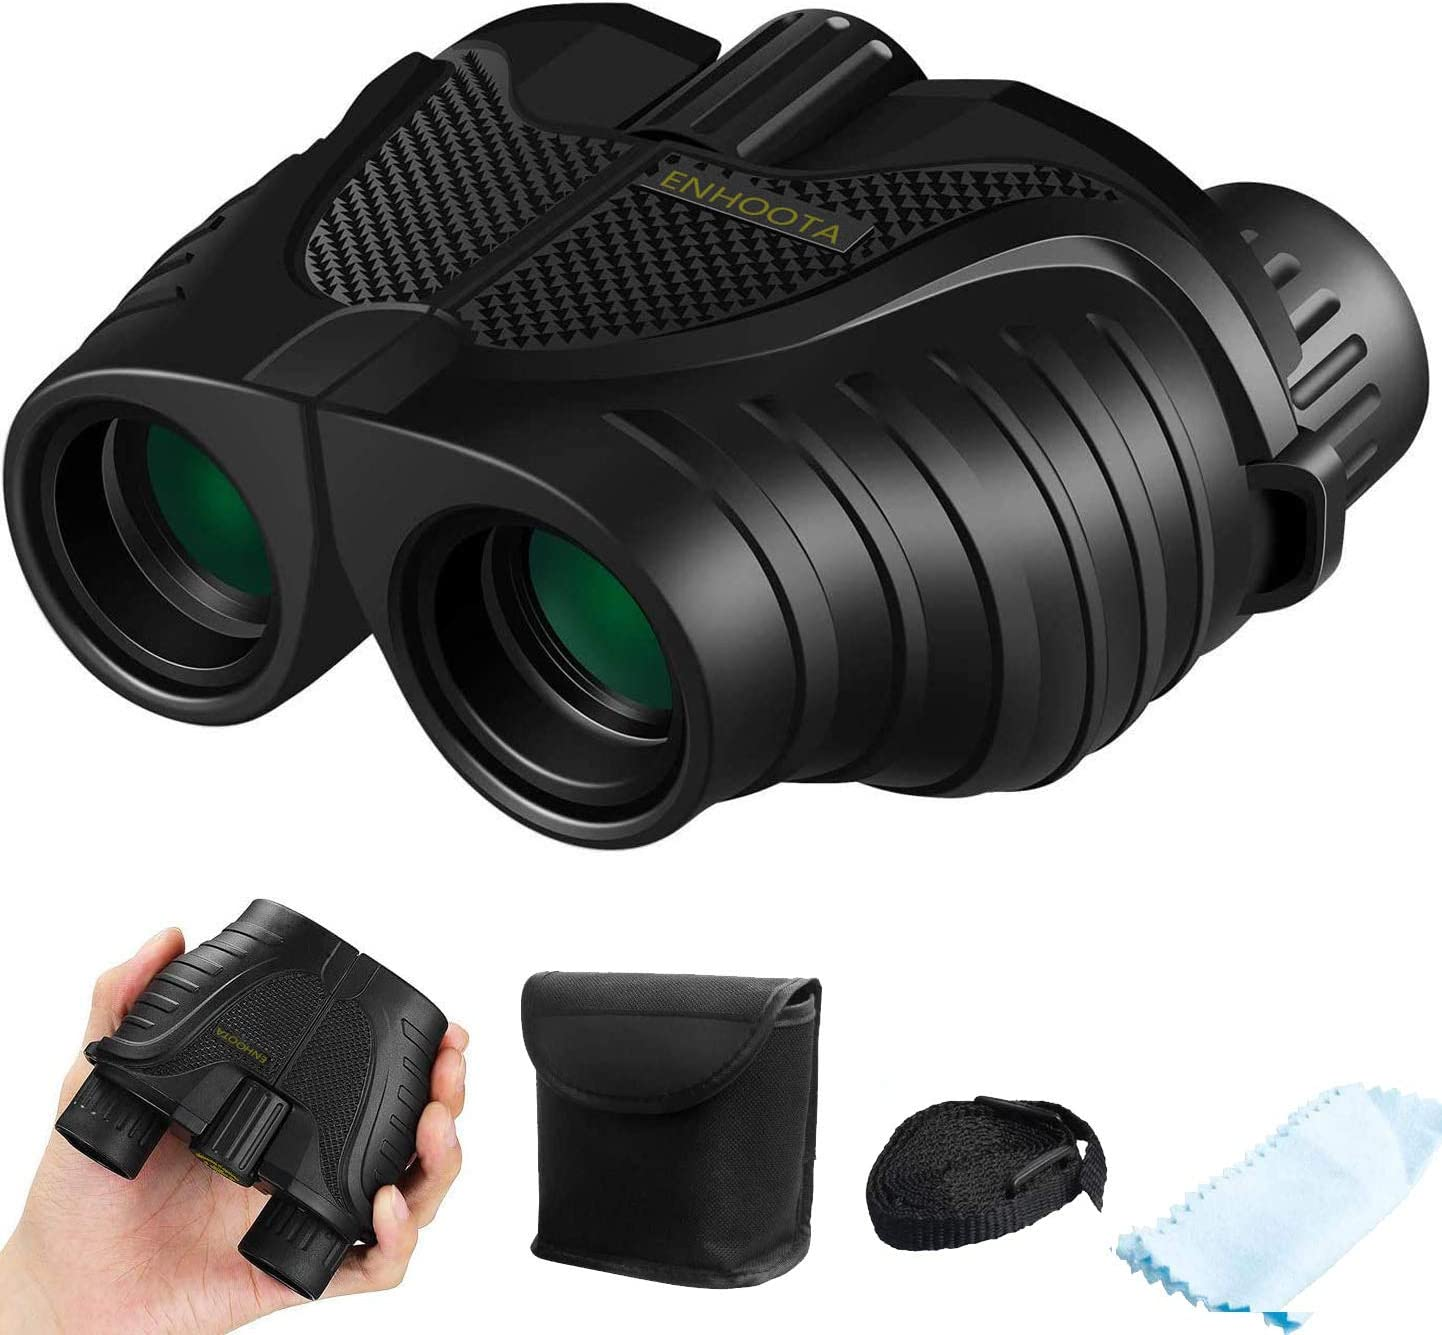 12×25 Binoculars with Low Light Night Vision, ENHOOTA Waterproof Large Eyepiece Binoculars for Adults Kids, Compact Easy Focus Binoculars for Bird Watching, Hunting, Outdoors Travel, Sightseeing